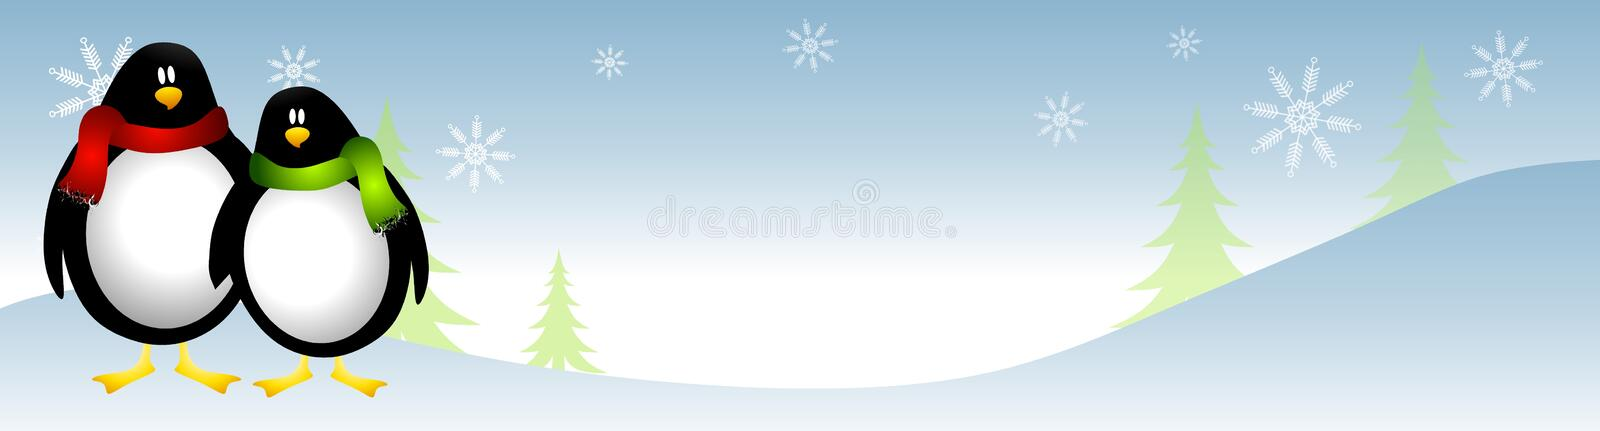 Download Penguins In The Snow Royalty Free Stock Image - Image: 6712526